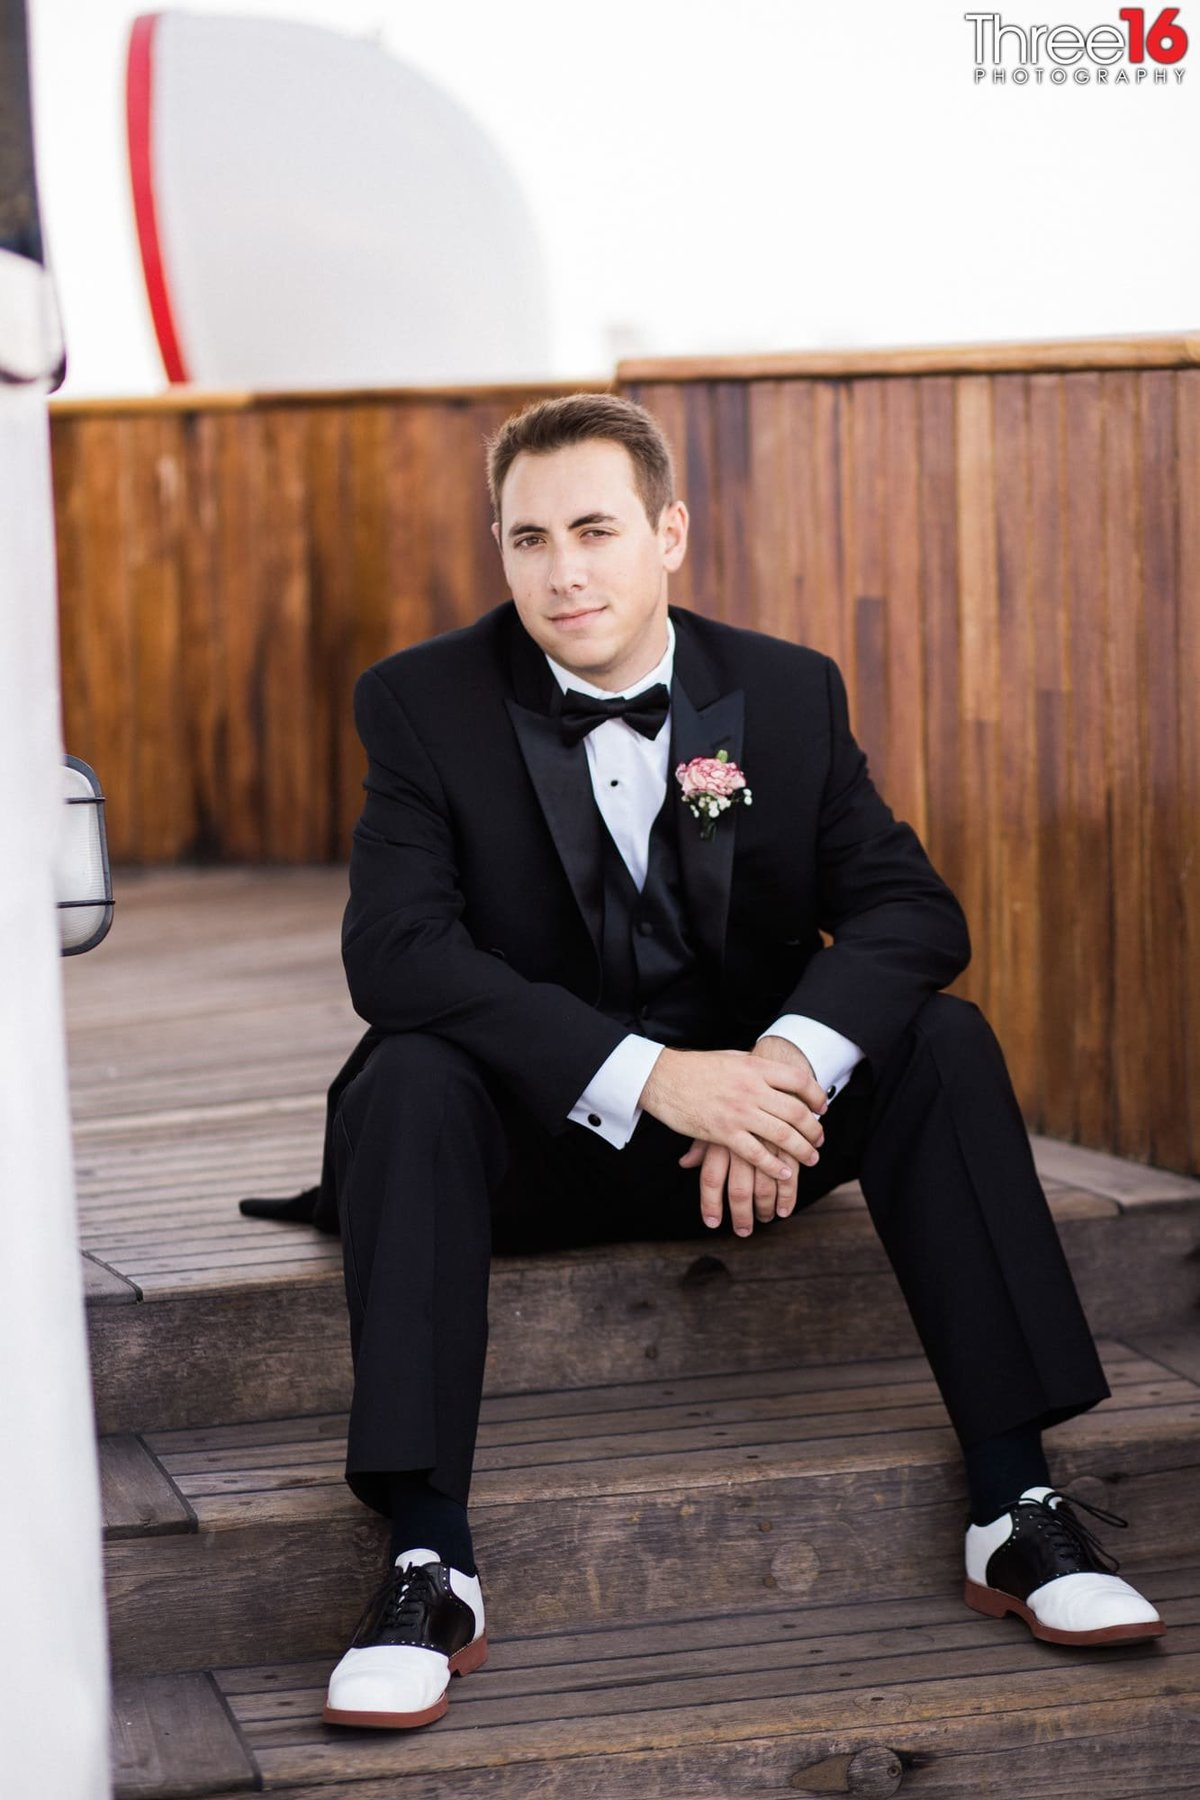 Groom sitting down prior to wedding service